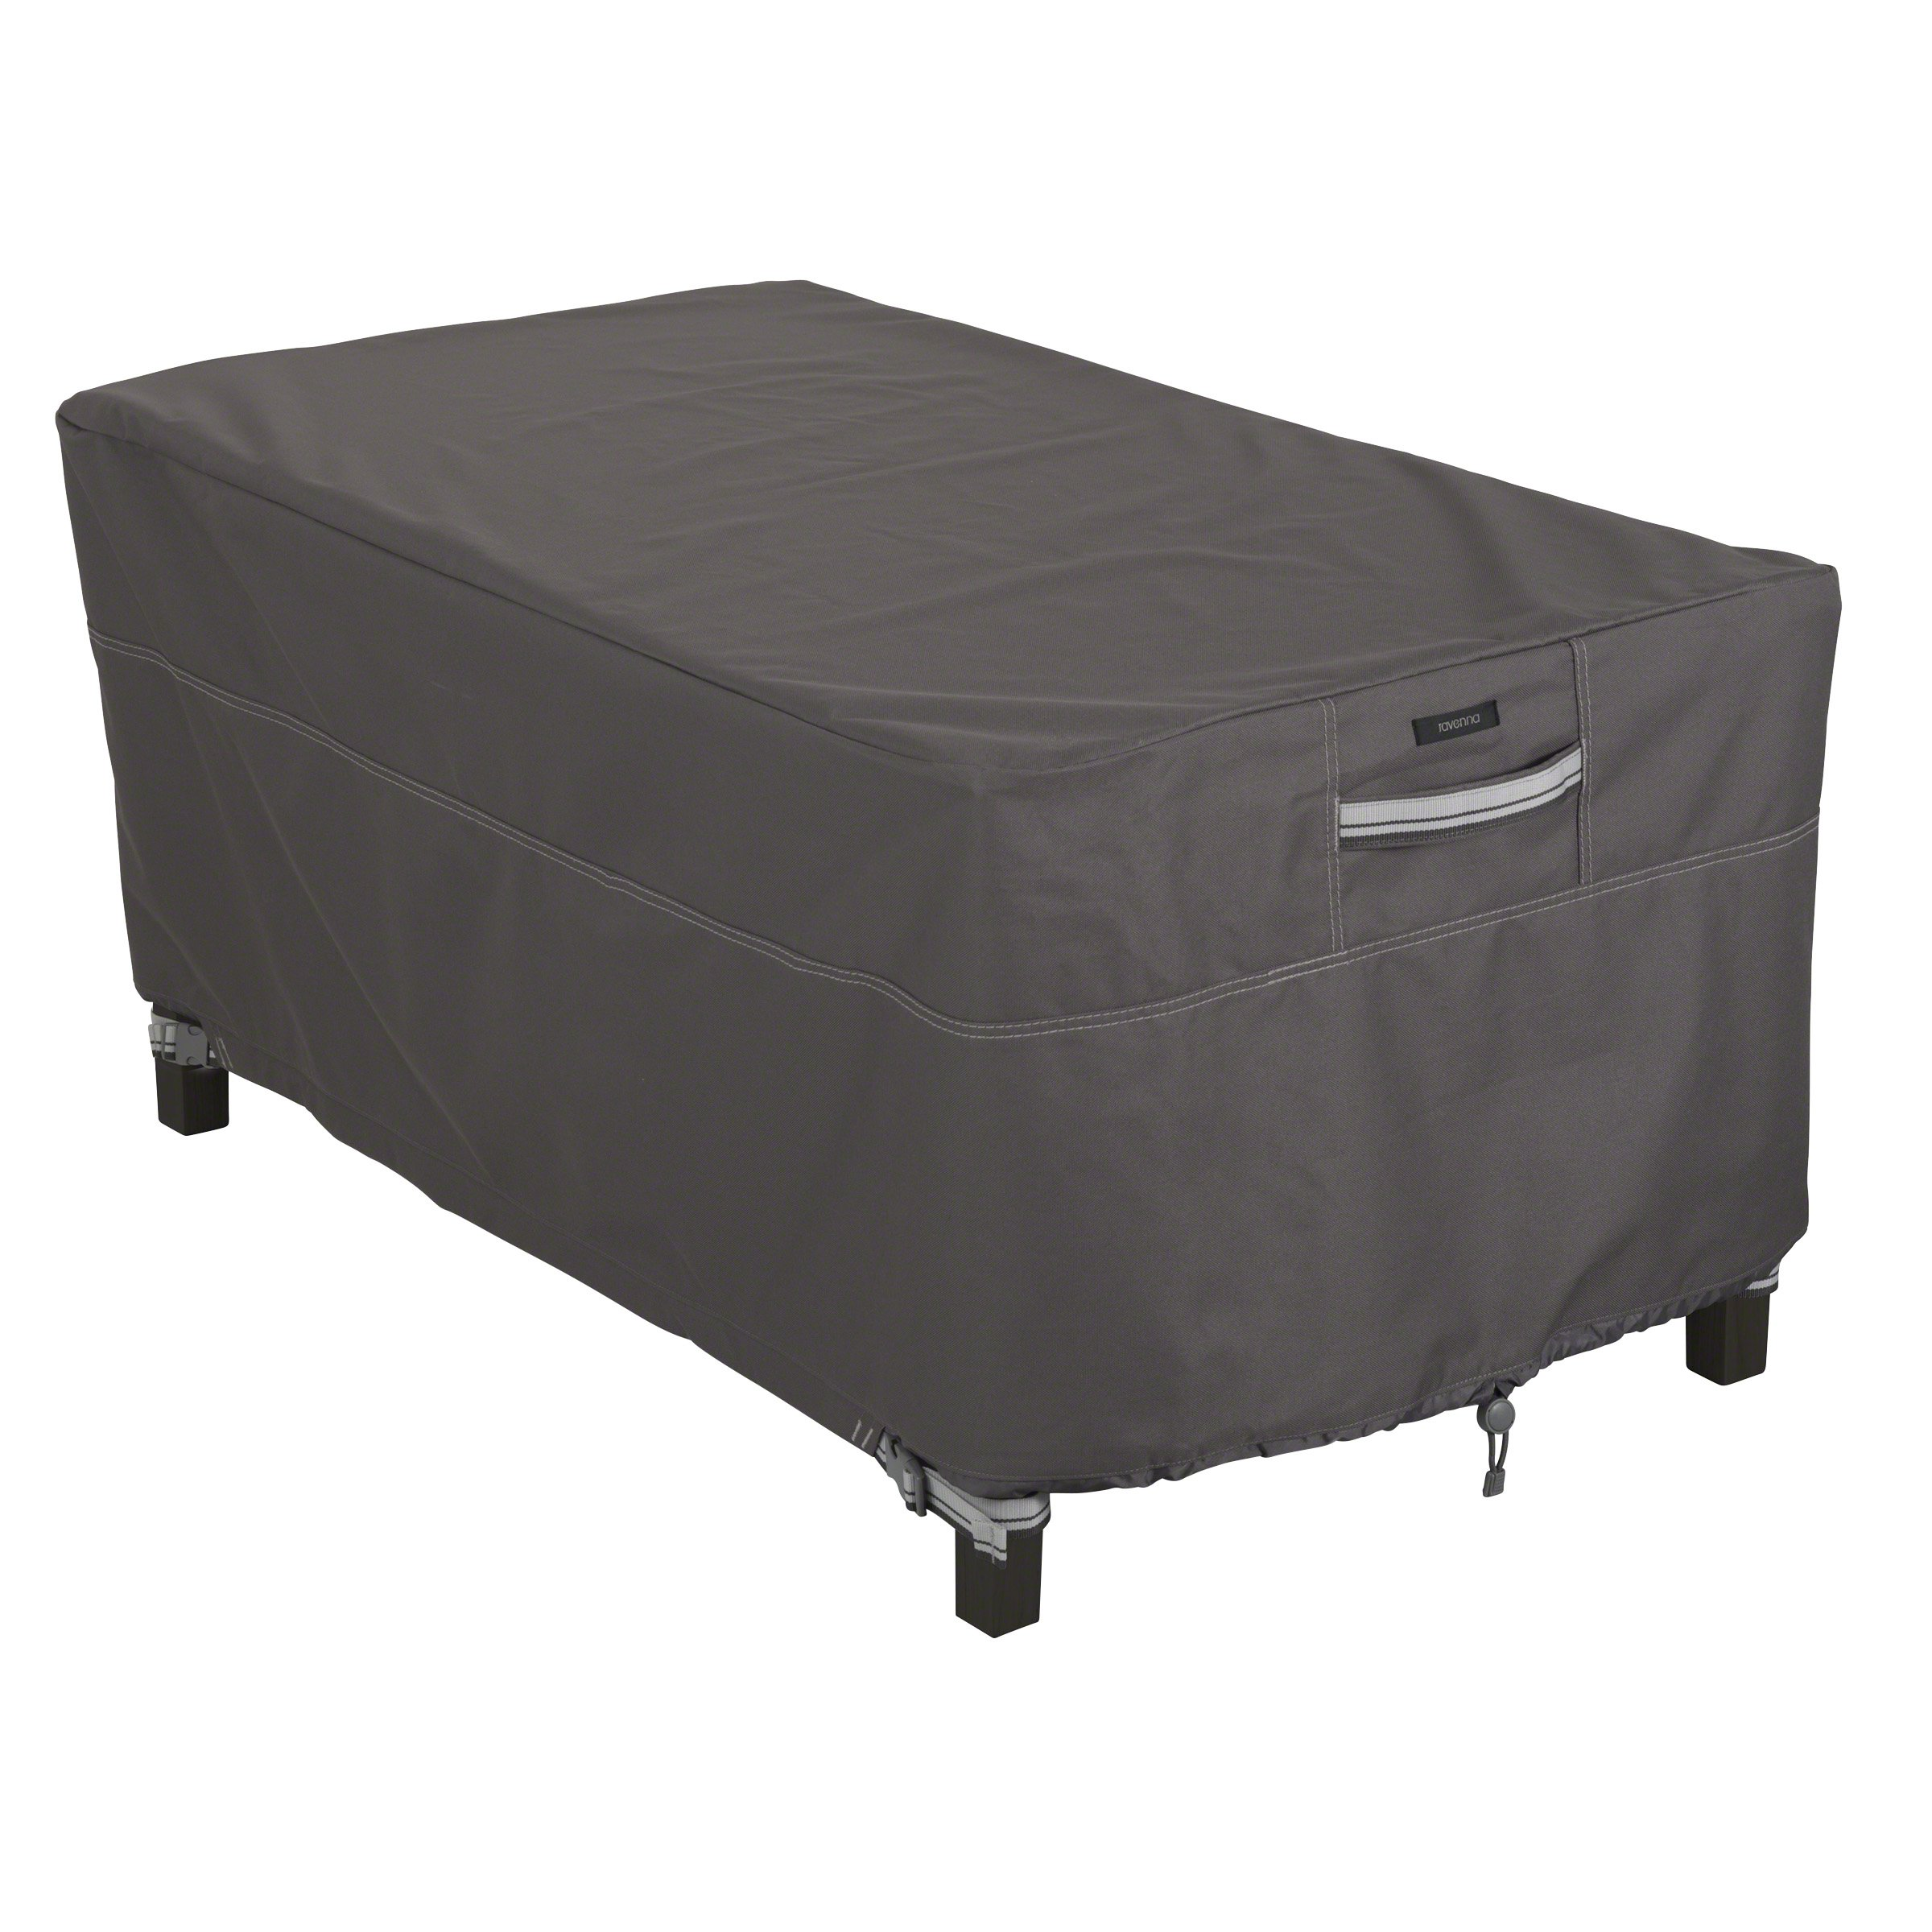 Classic Accessories Ravenna Cover For Rectangular Coffee Tables, Taupe by Classic Accessories